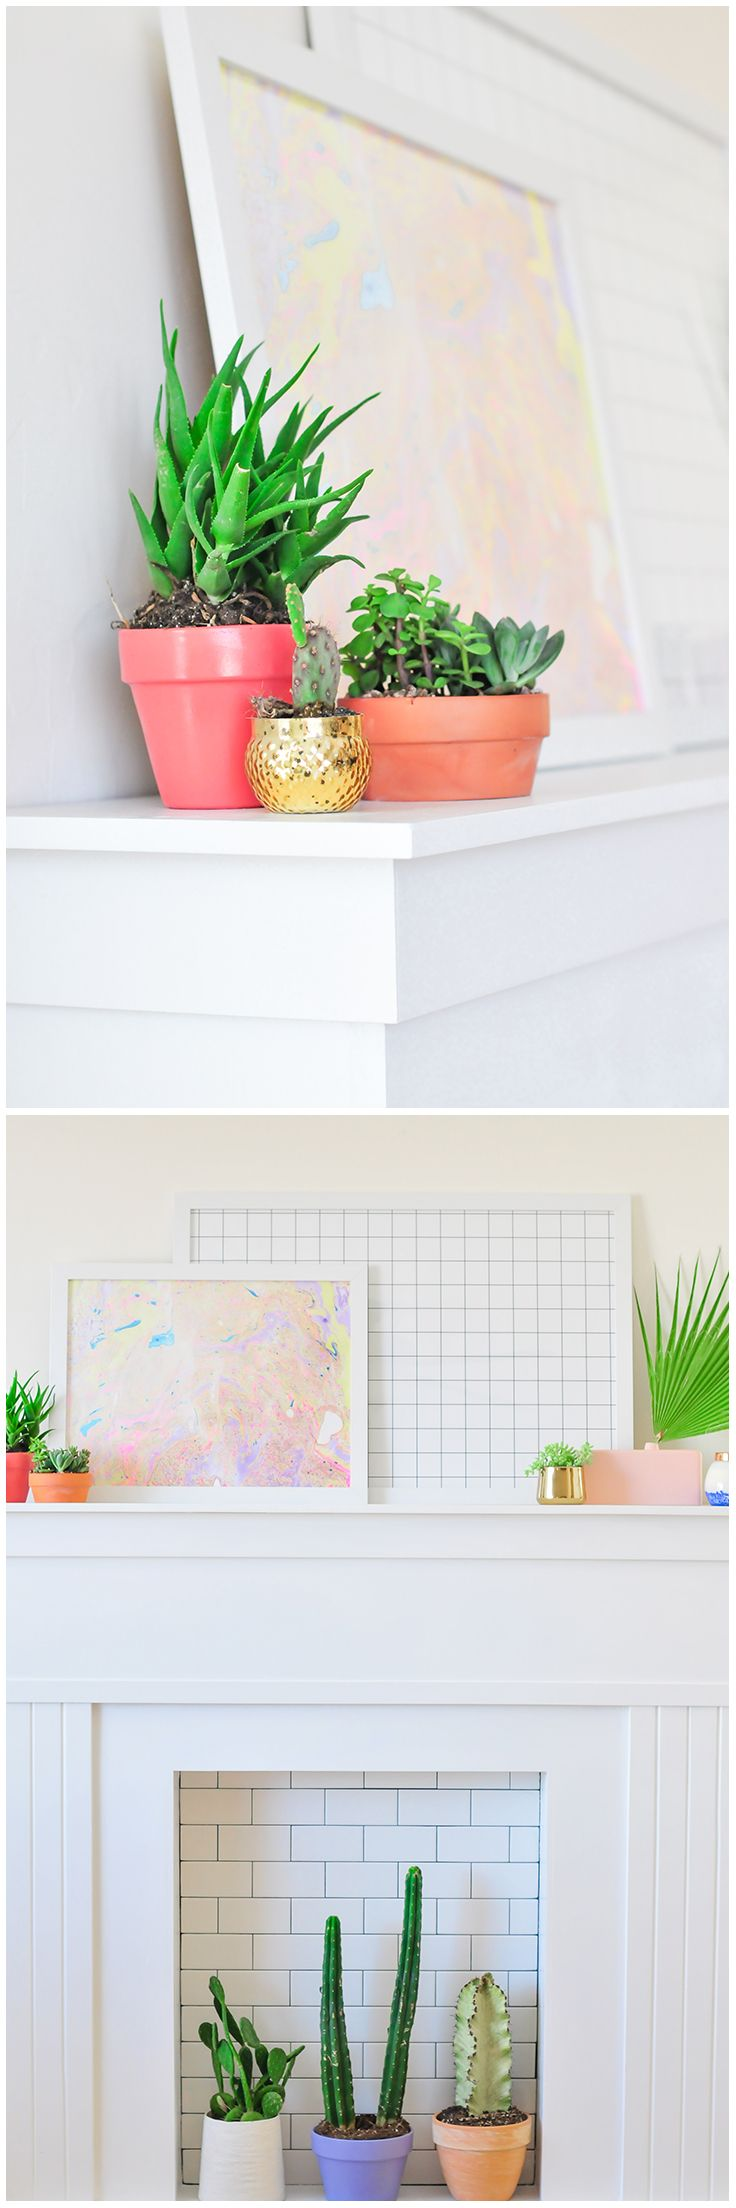 Build a faux fireplace made from tongue and groove pattern stock board and subway tile. It's an elegant mantel you can decorate all year long. Take it with you when you move! The Home Depot Blog has the step-by-step instructions.